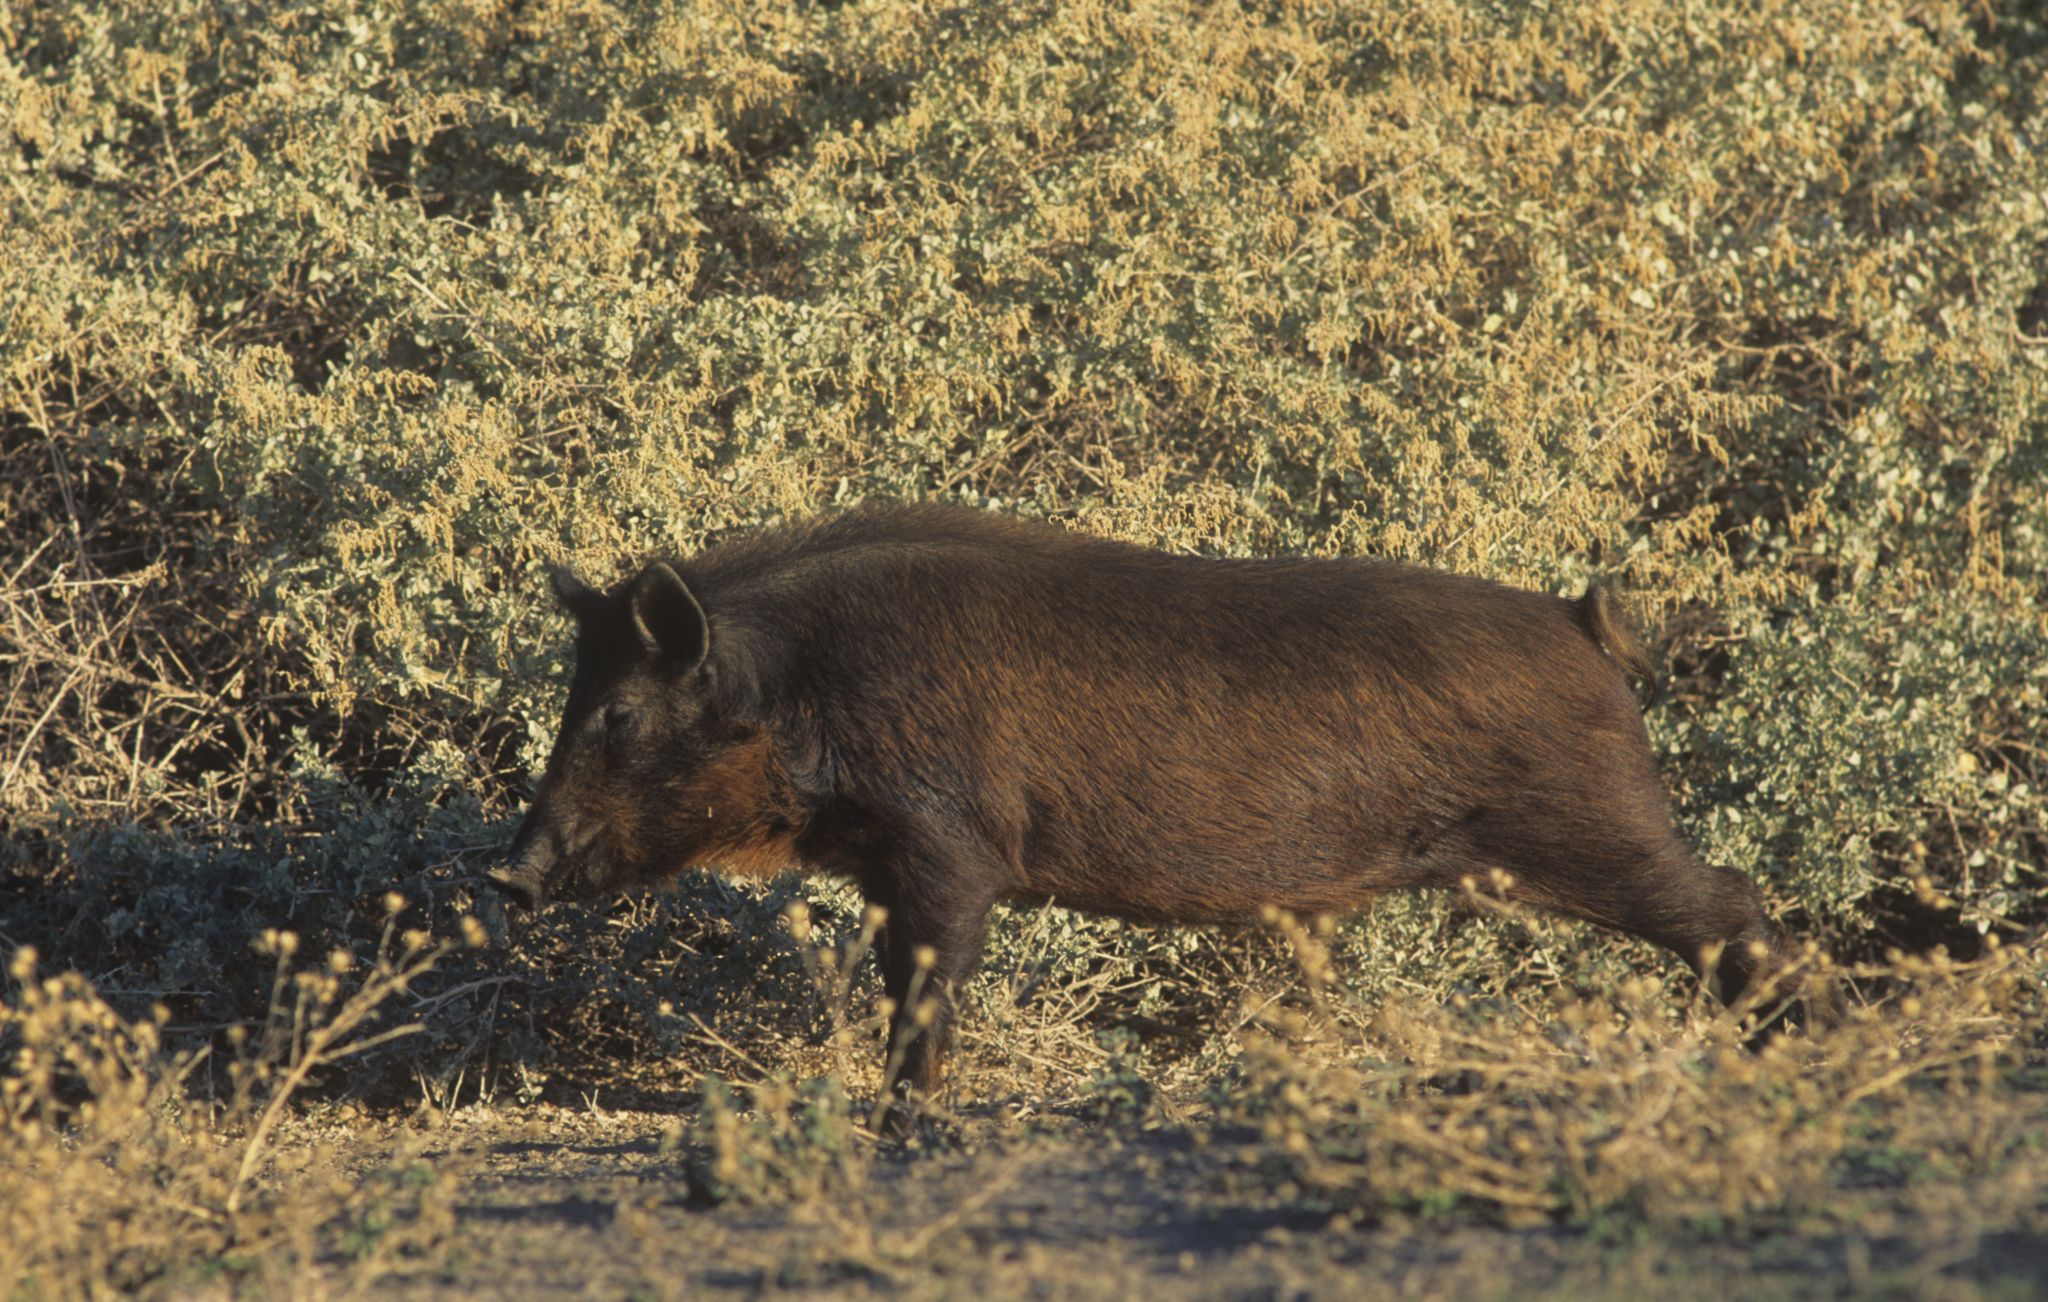 One eccentric socialite is to blame for California's wild pig problem